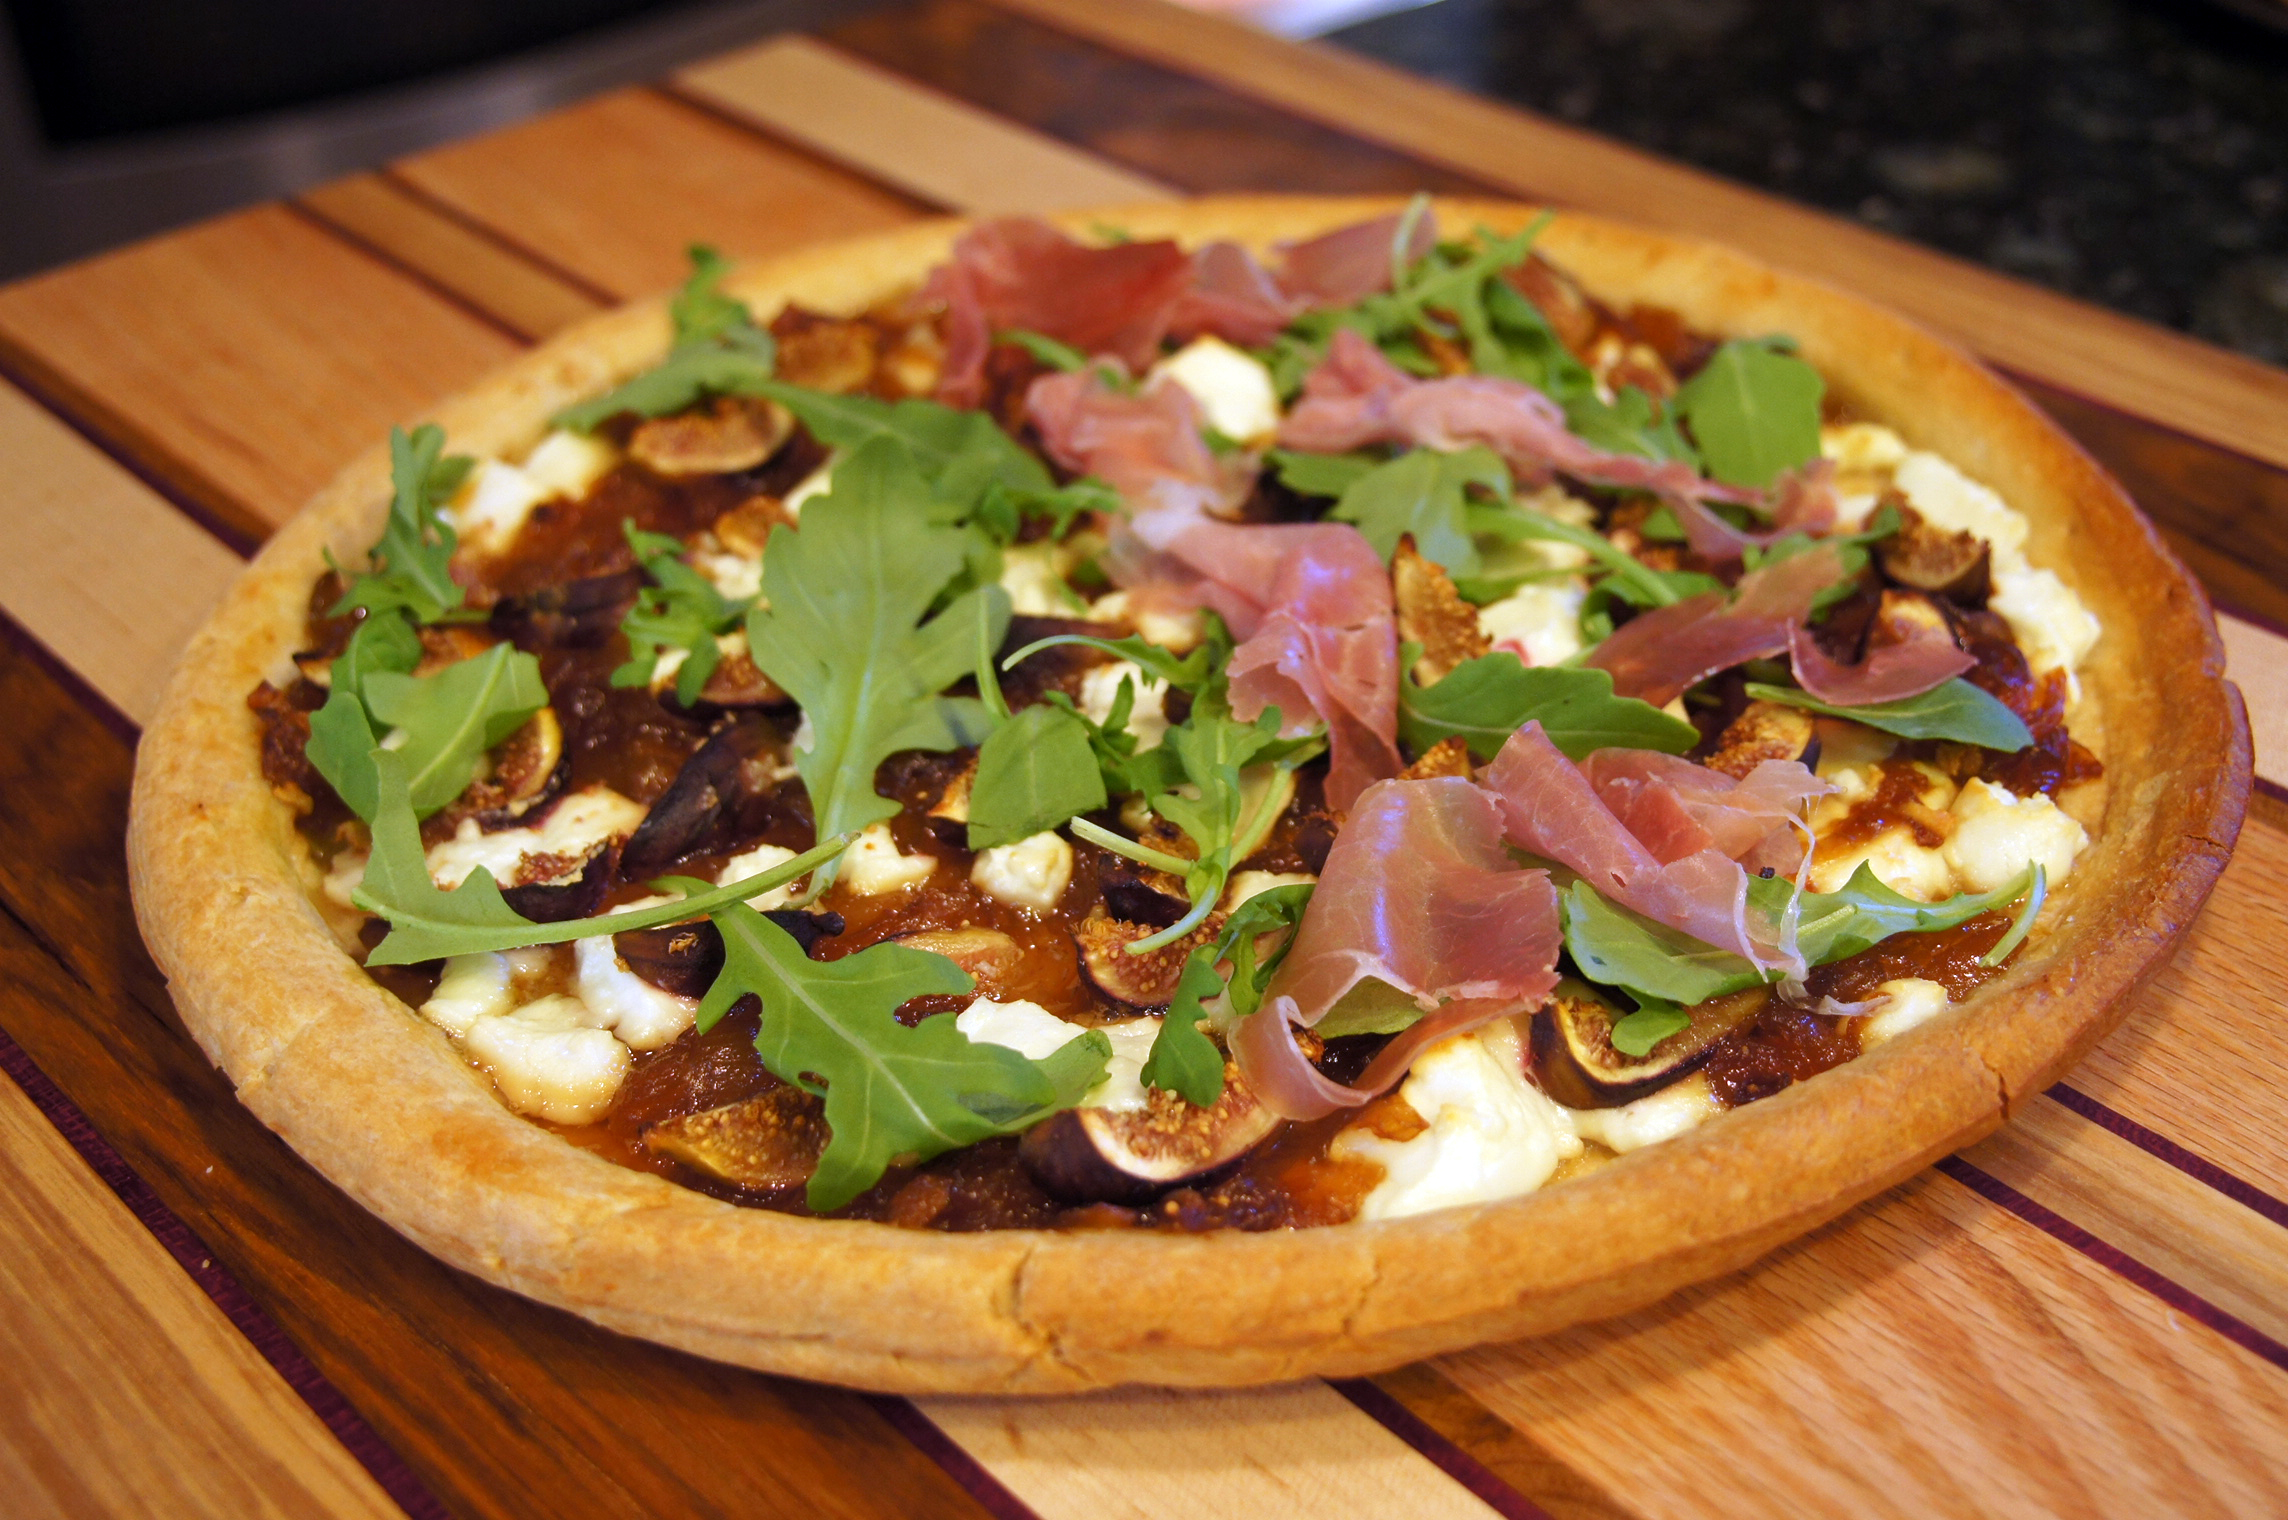 Fig and Goat Cheese Pizza with Arugula and Prosciutto | Bits and Bytes